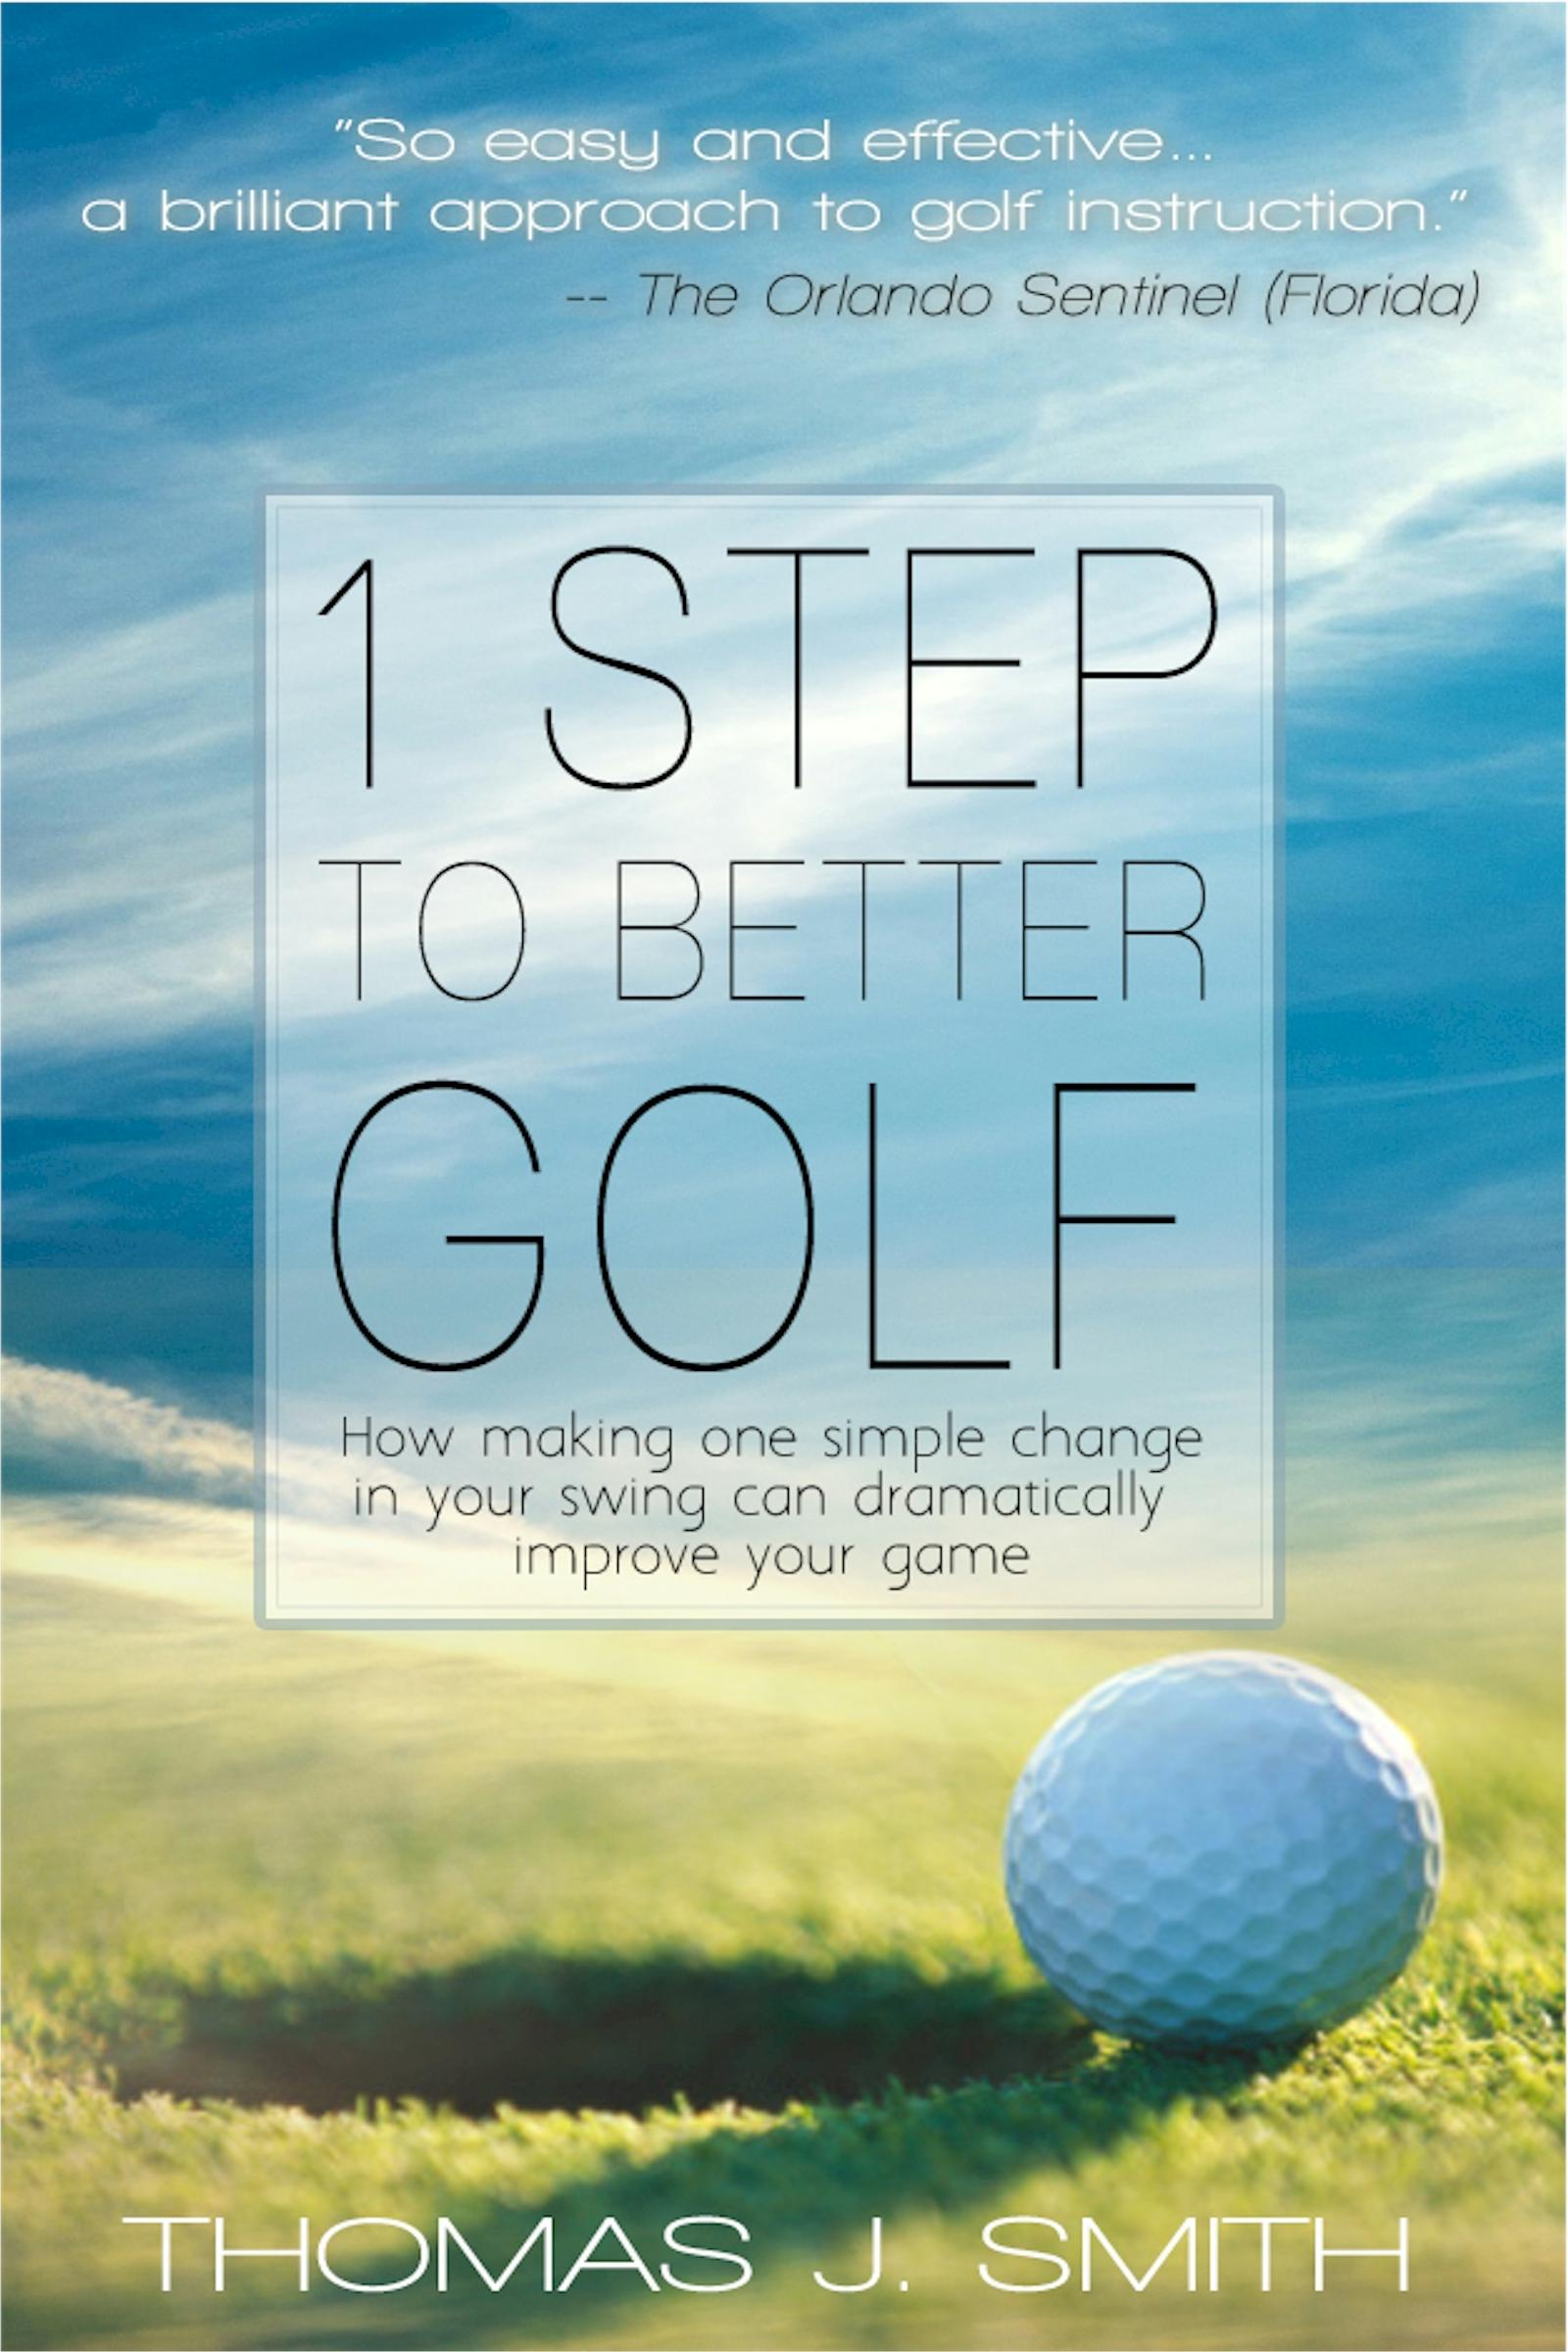 1 Step to Better Golf: How Making One Simple Change in Your Golf Swing Can Dramatically Improve Your Game